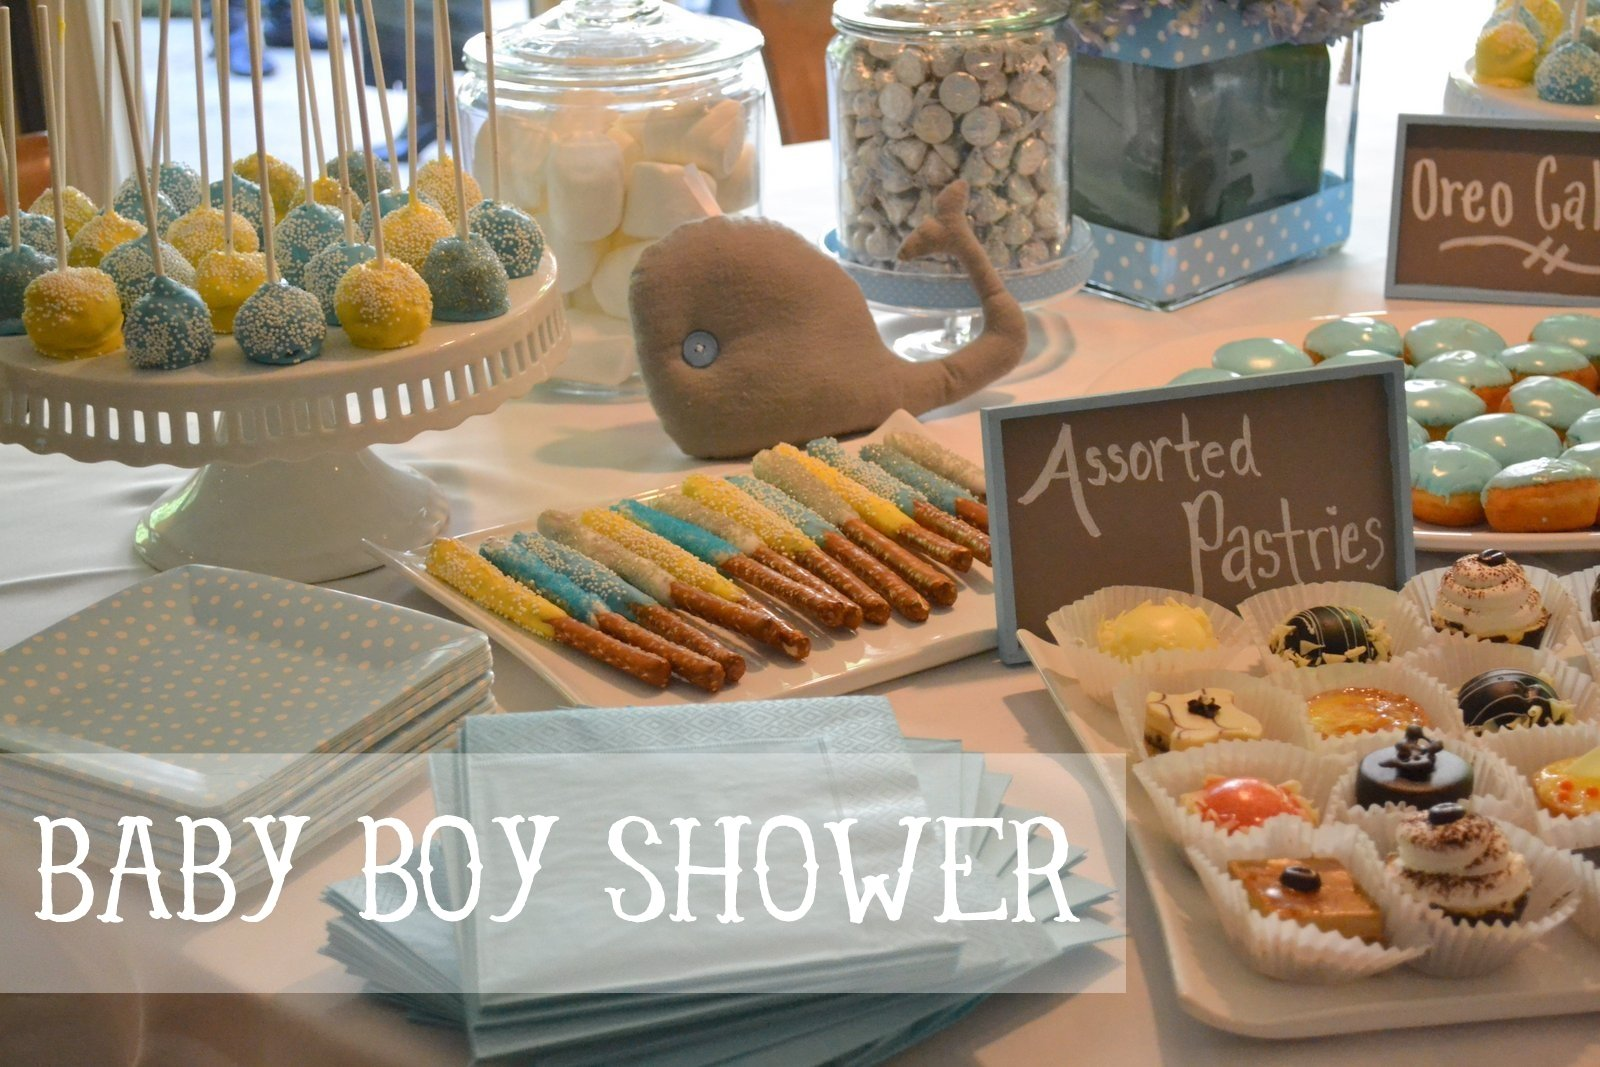 10 Great Ideas For Baby Boy Shower whale baby boy shower ideas 3 2020